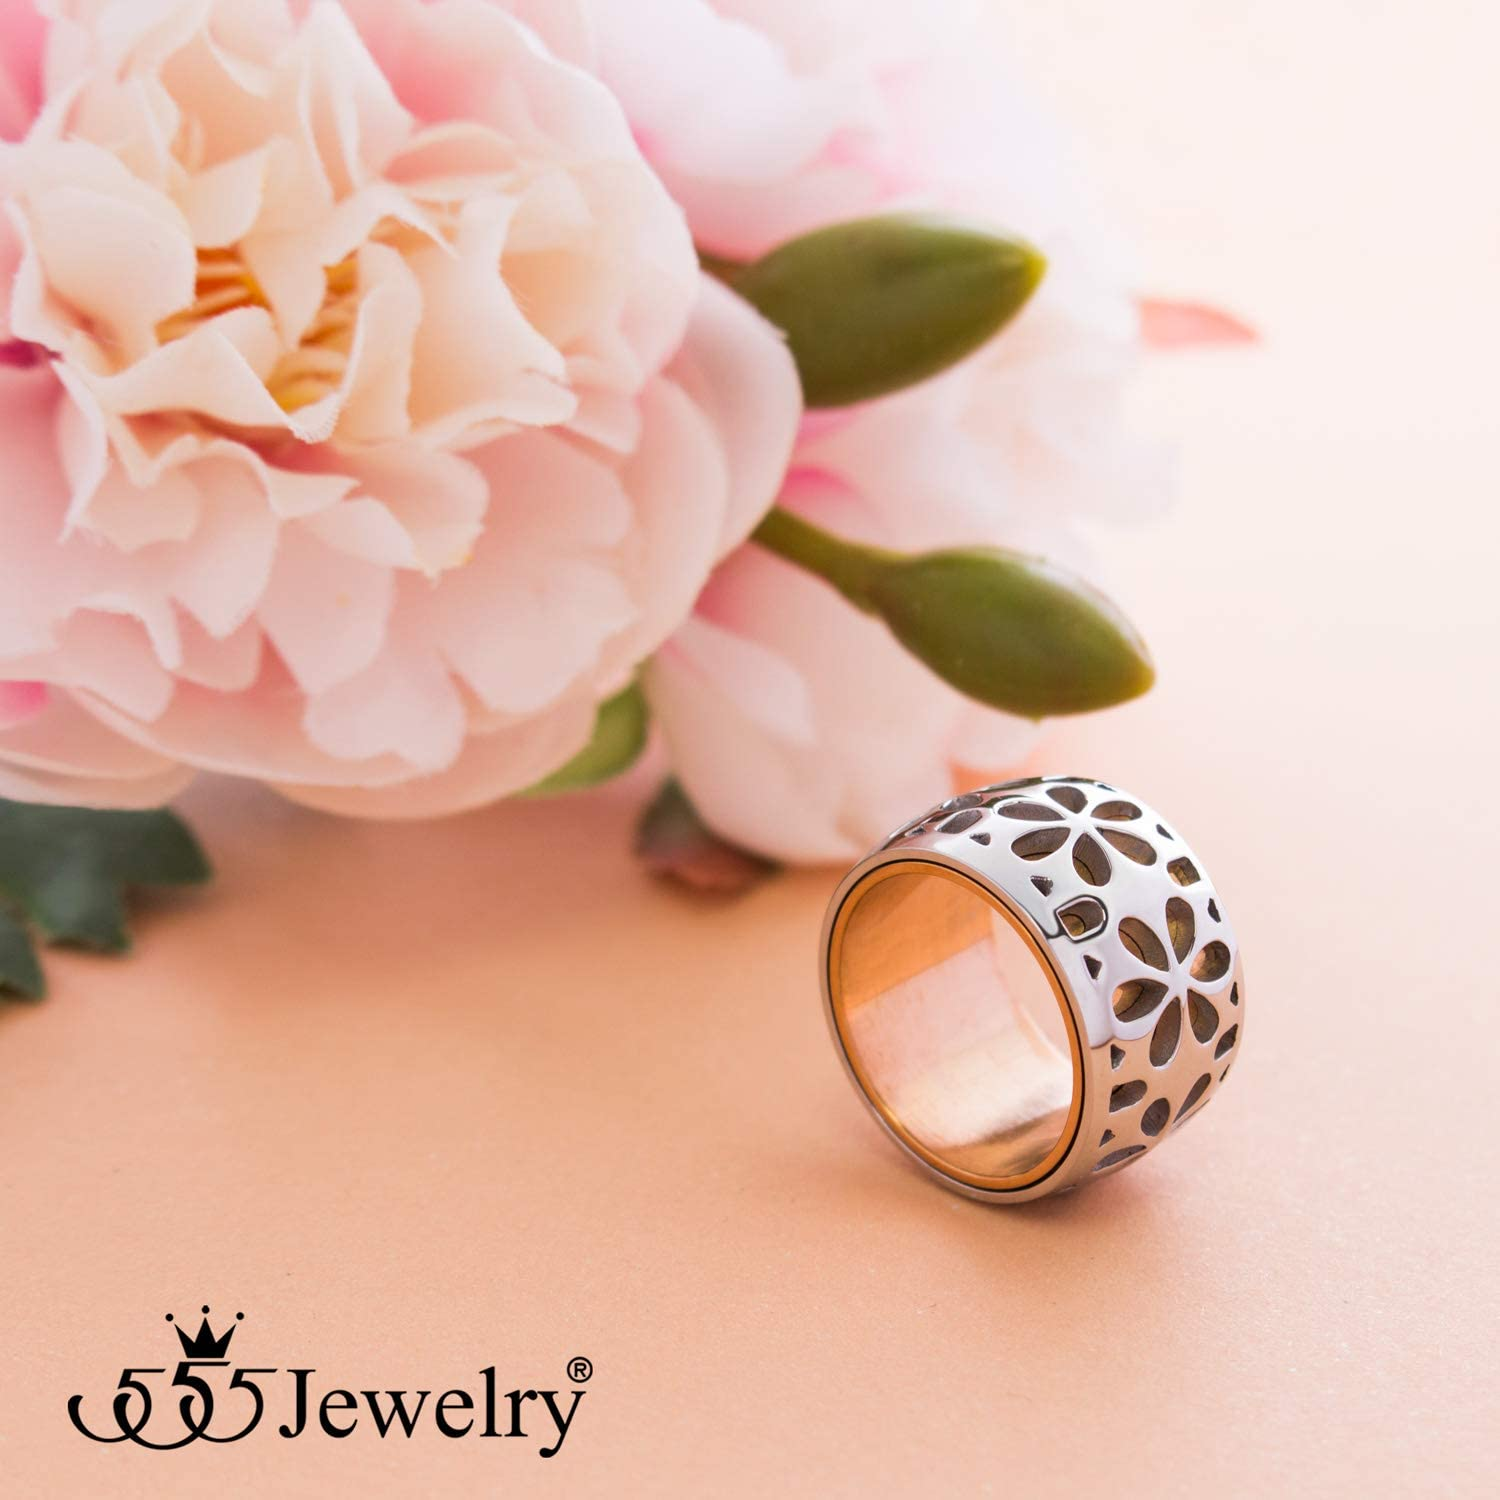 555Jewelry Stainless Steel Daisy Flowers Full Bloom Memorable Band Ring